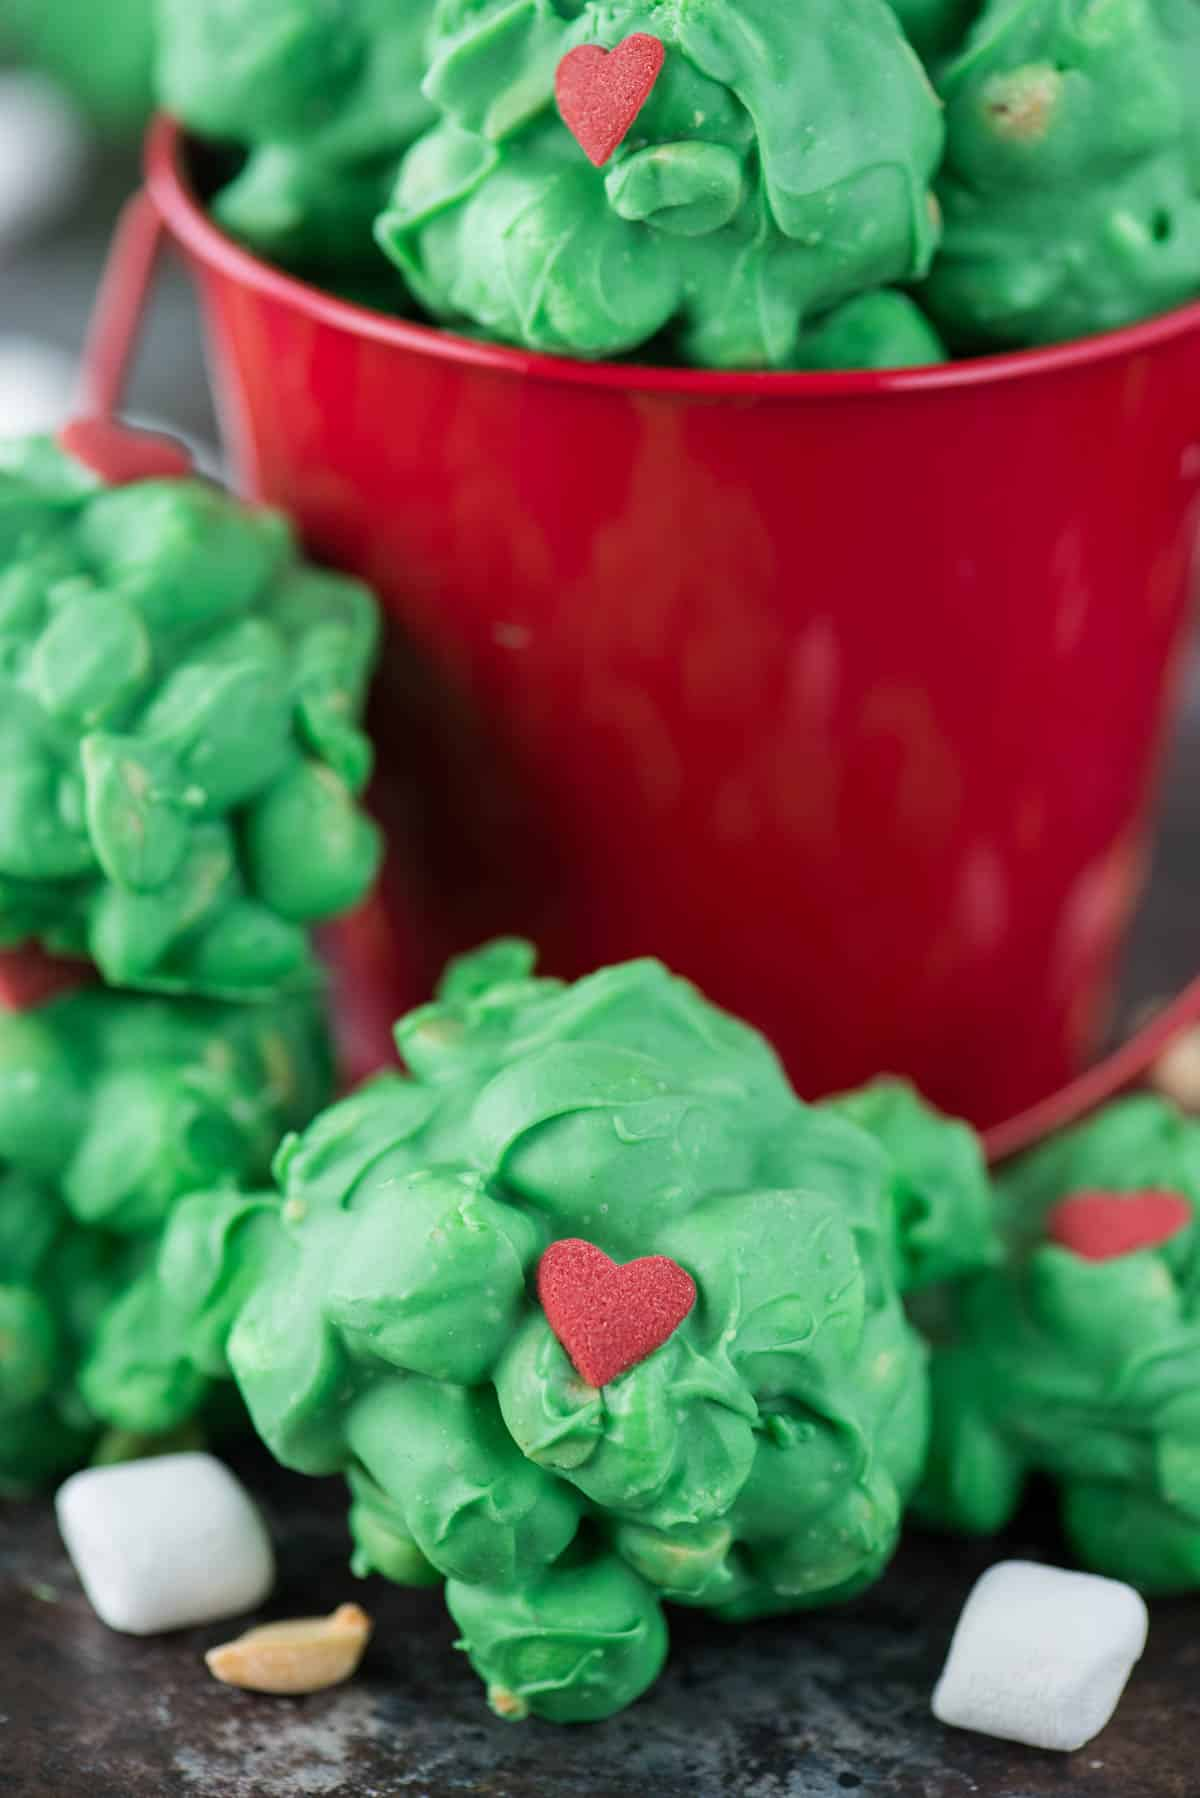 peanut marshmallow clusters coated in green chocolate with a red candy heart for grinch clusters!